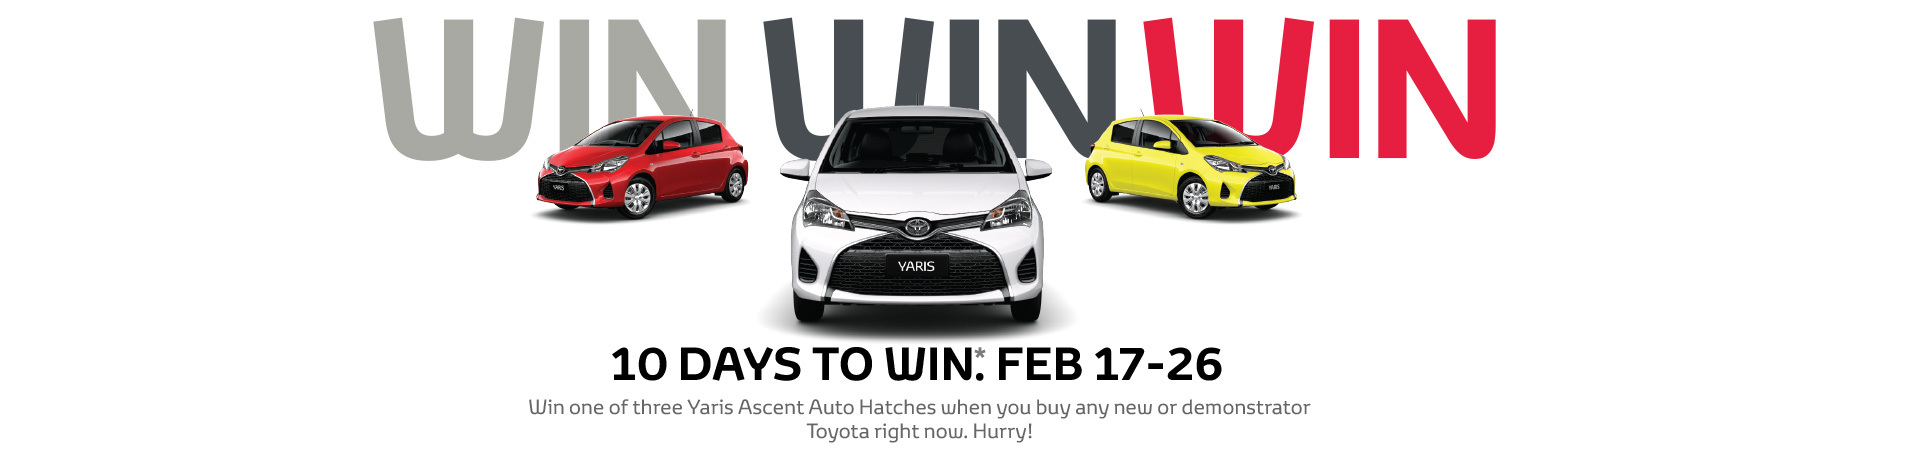 10 days to WIN Toyota National Offer